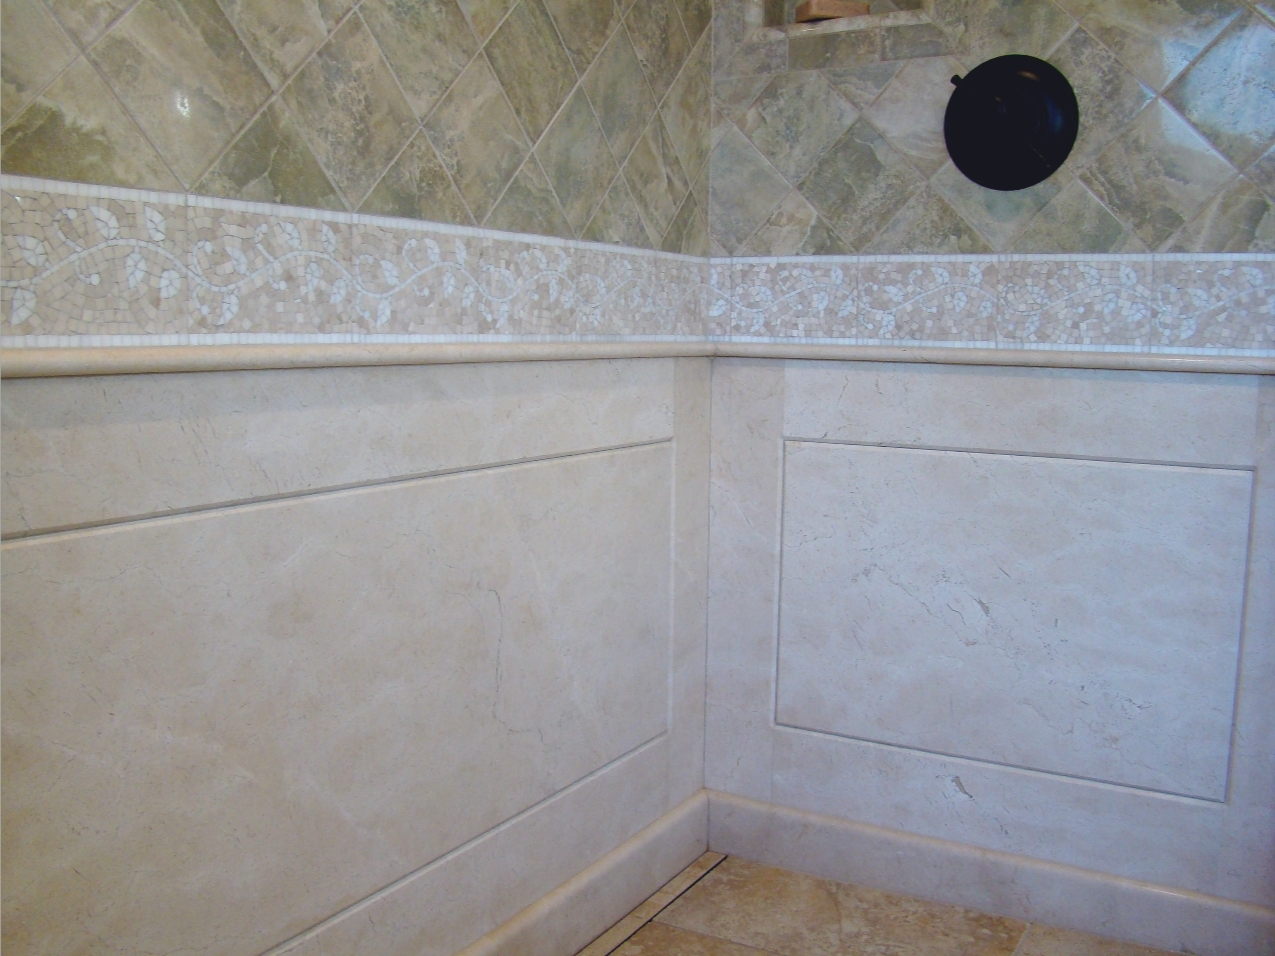 Fiorito Interior Design, interior design, remodel, master bathroom, linear drain, channel drain, shower, mosaic tile, marble wainscoting, traditional